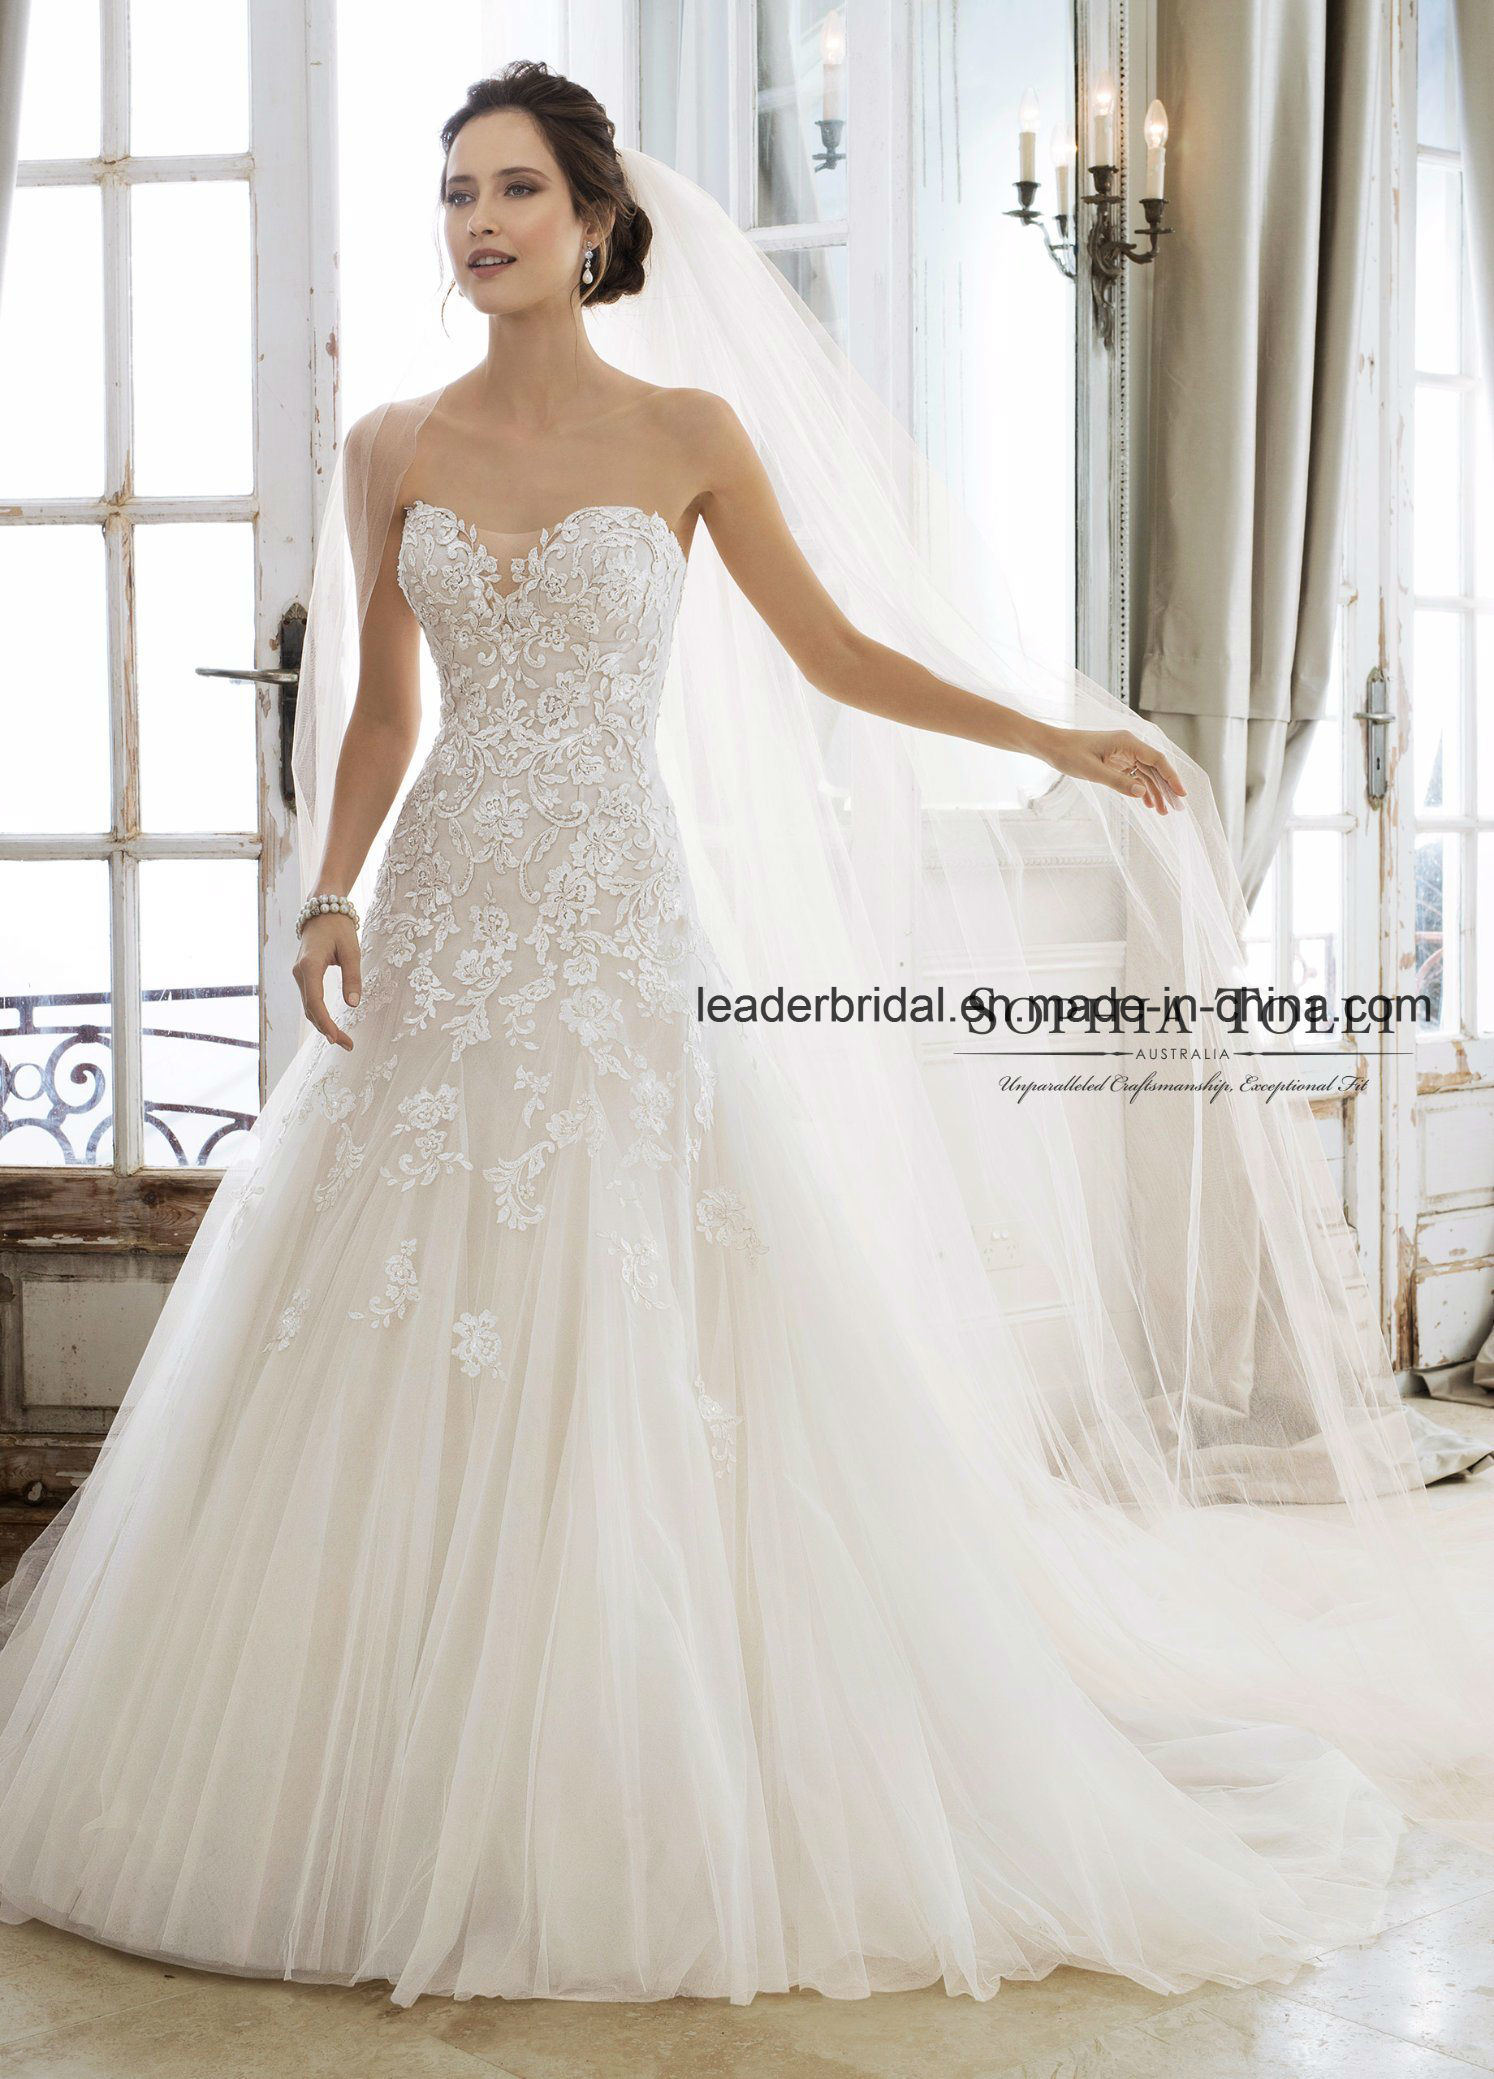 A Line Wedding Dress.Hot Item Strapless Bridal Dress Strapless A Line Lace Beaded Wedding Dresses 2018 E13426